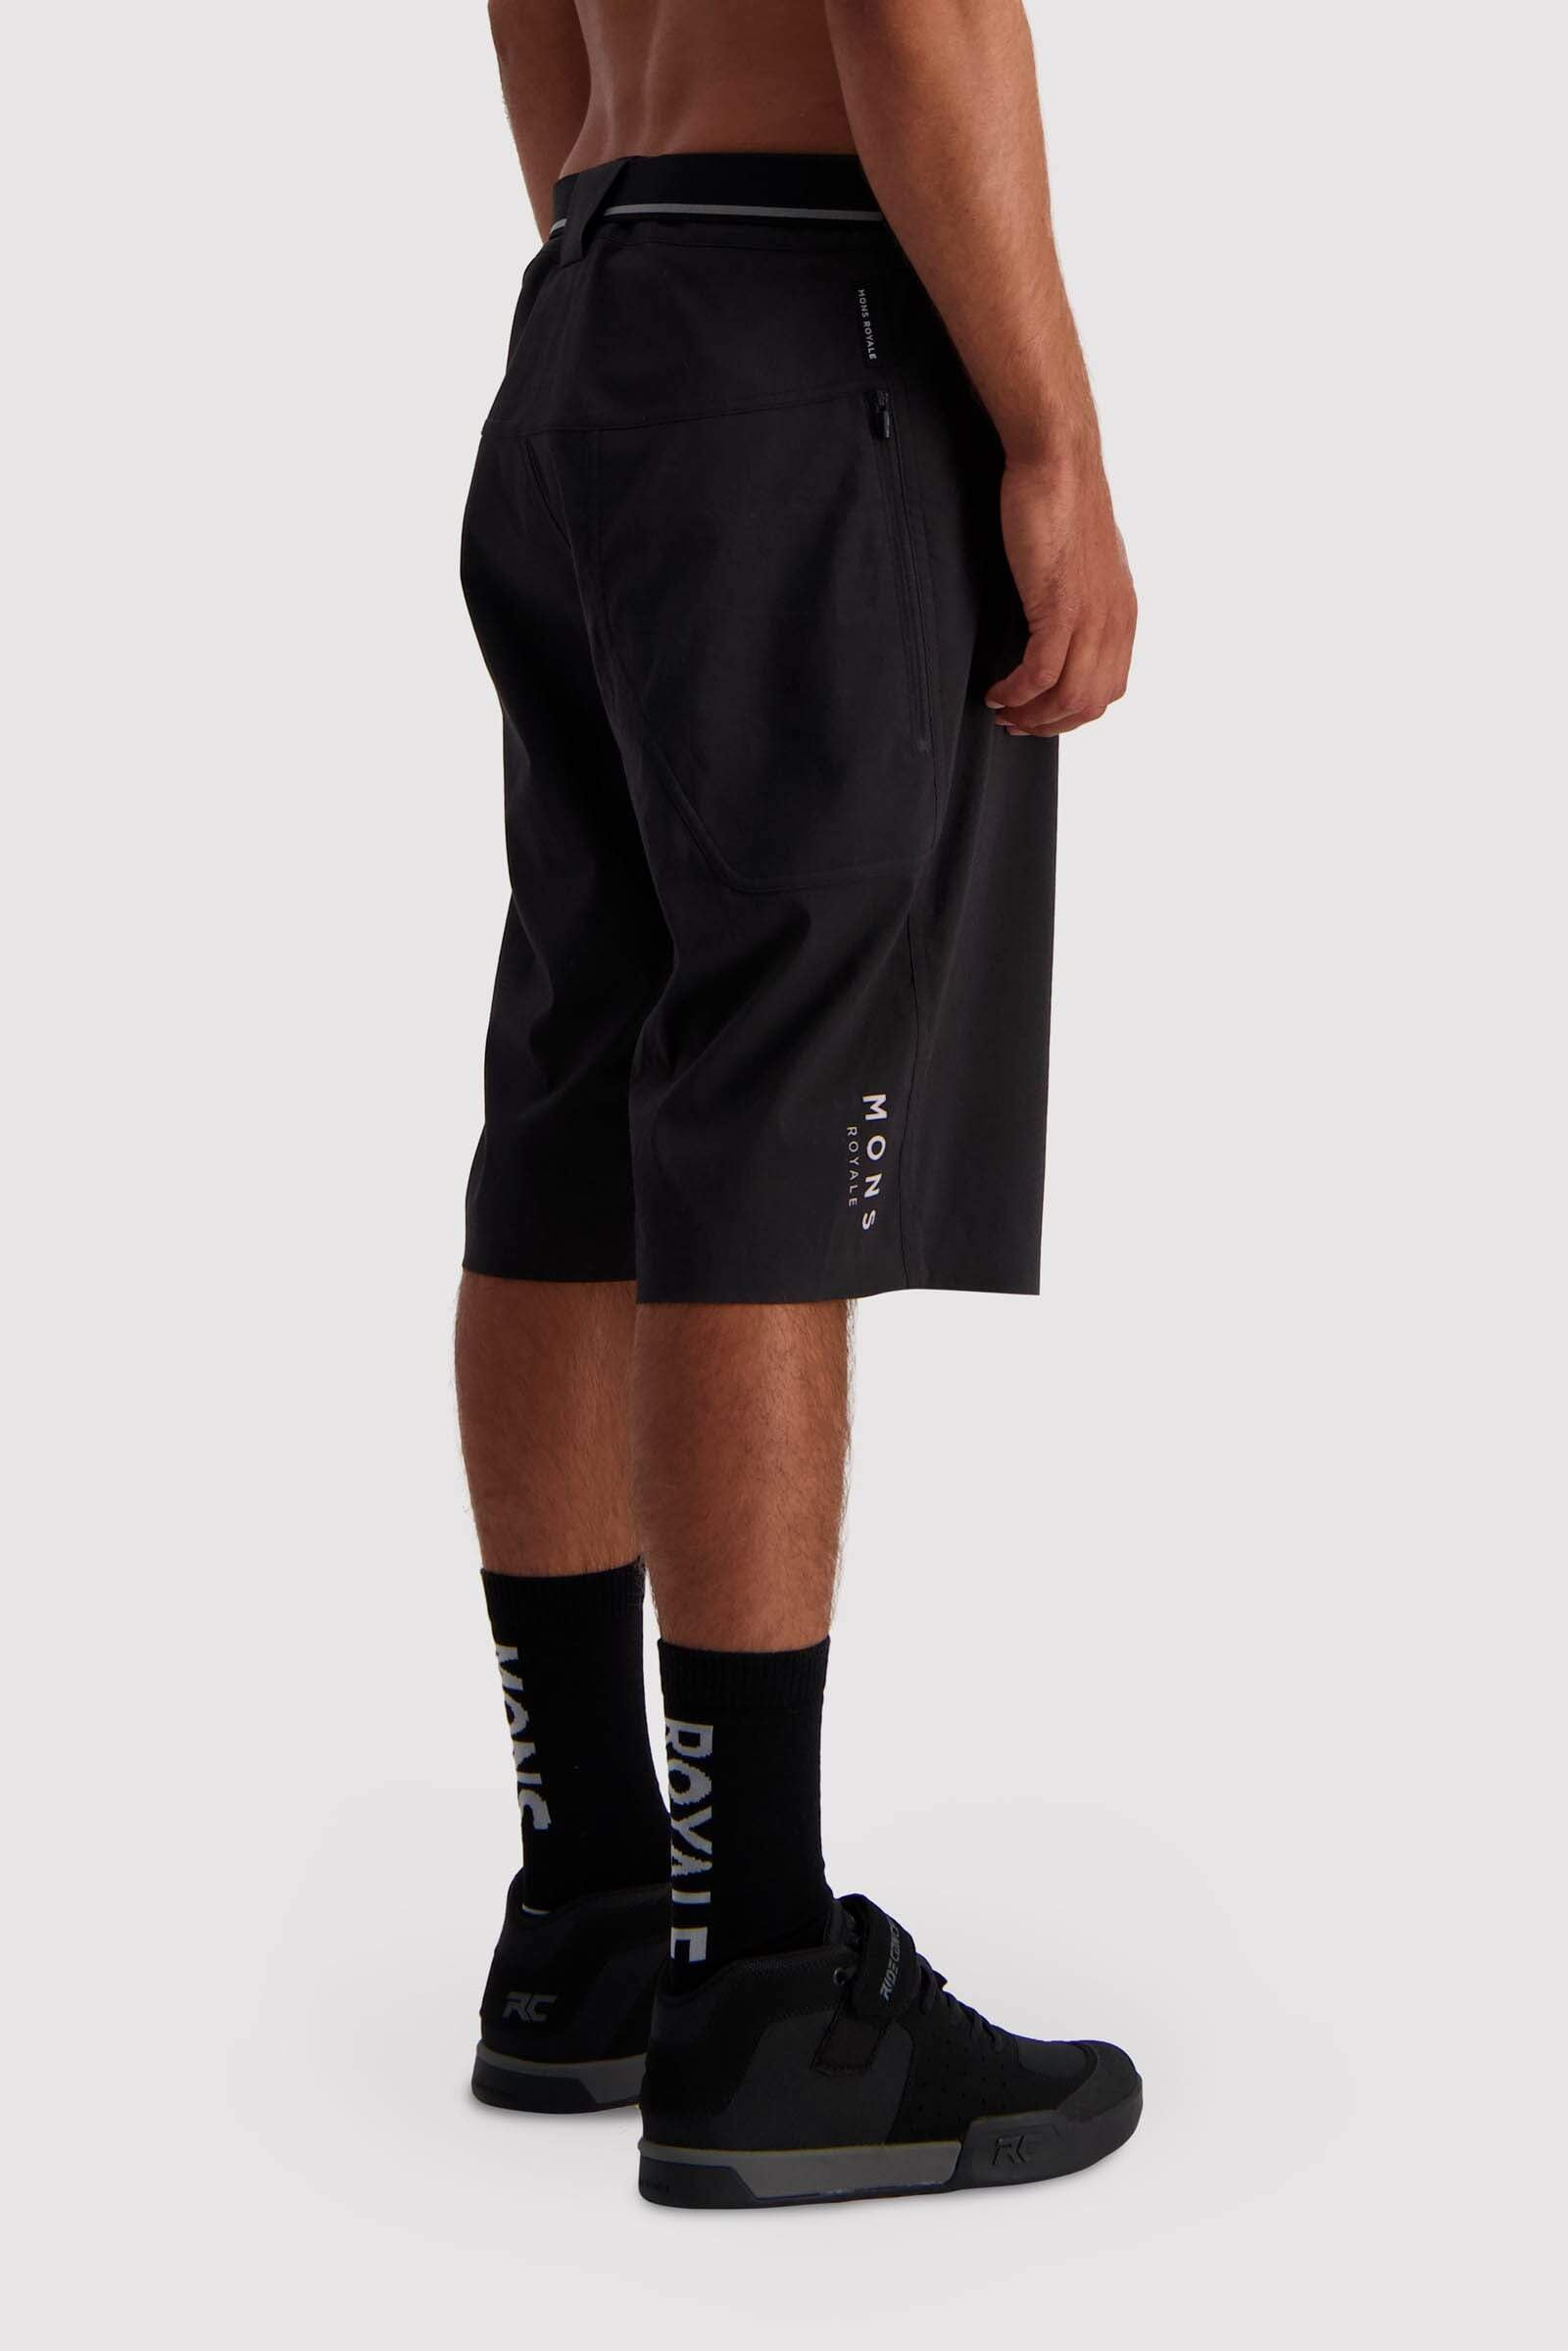 Virage Bike Shorts - Black